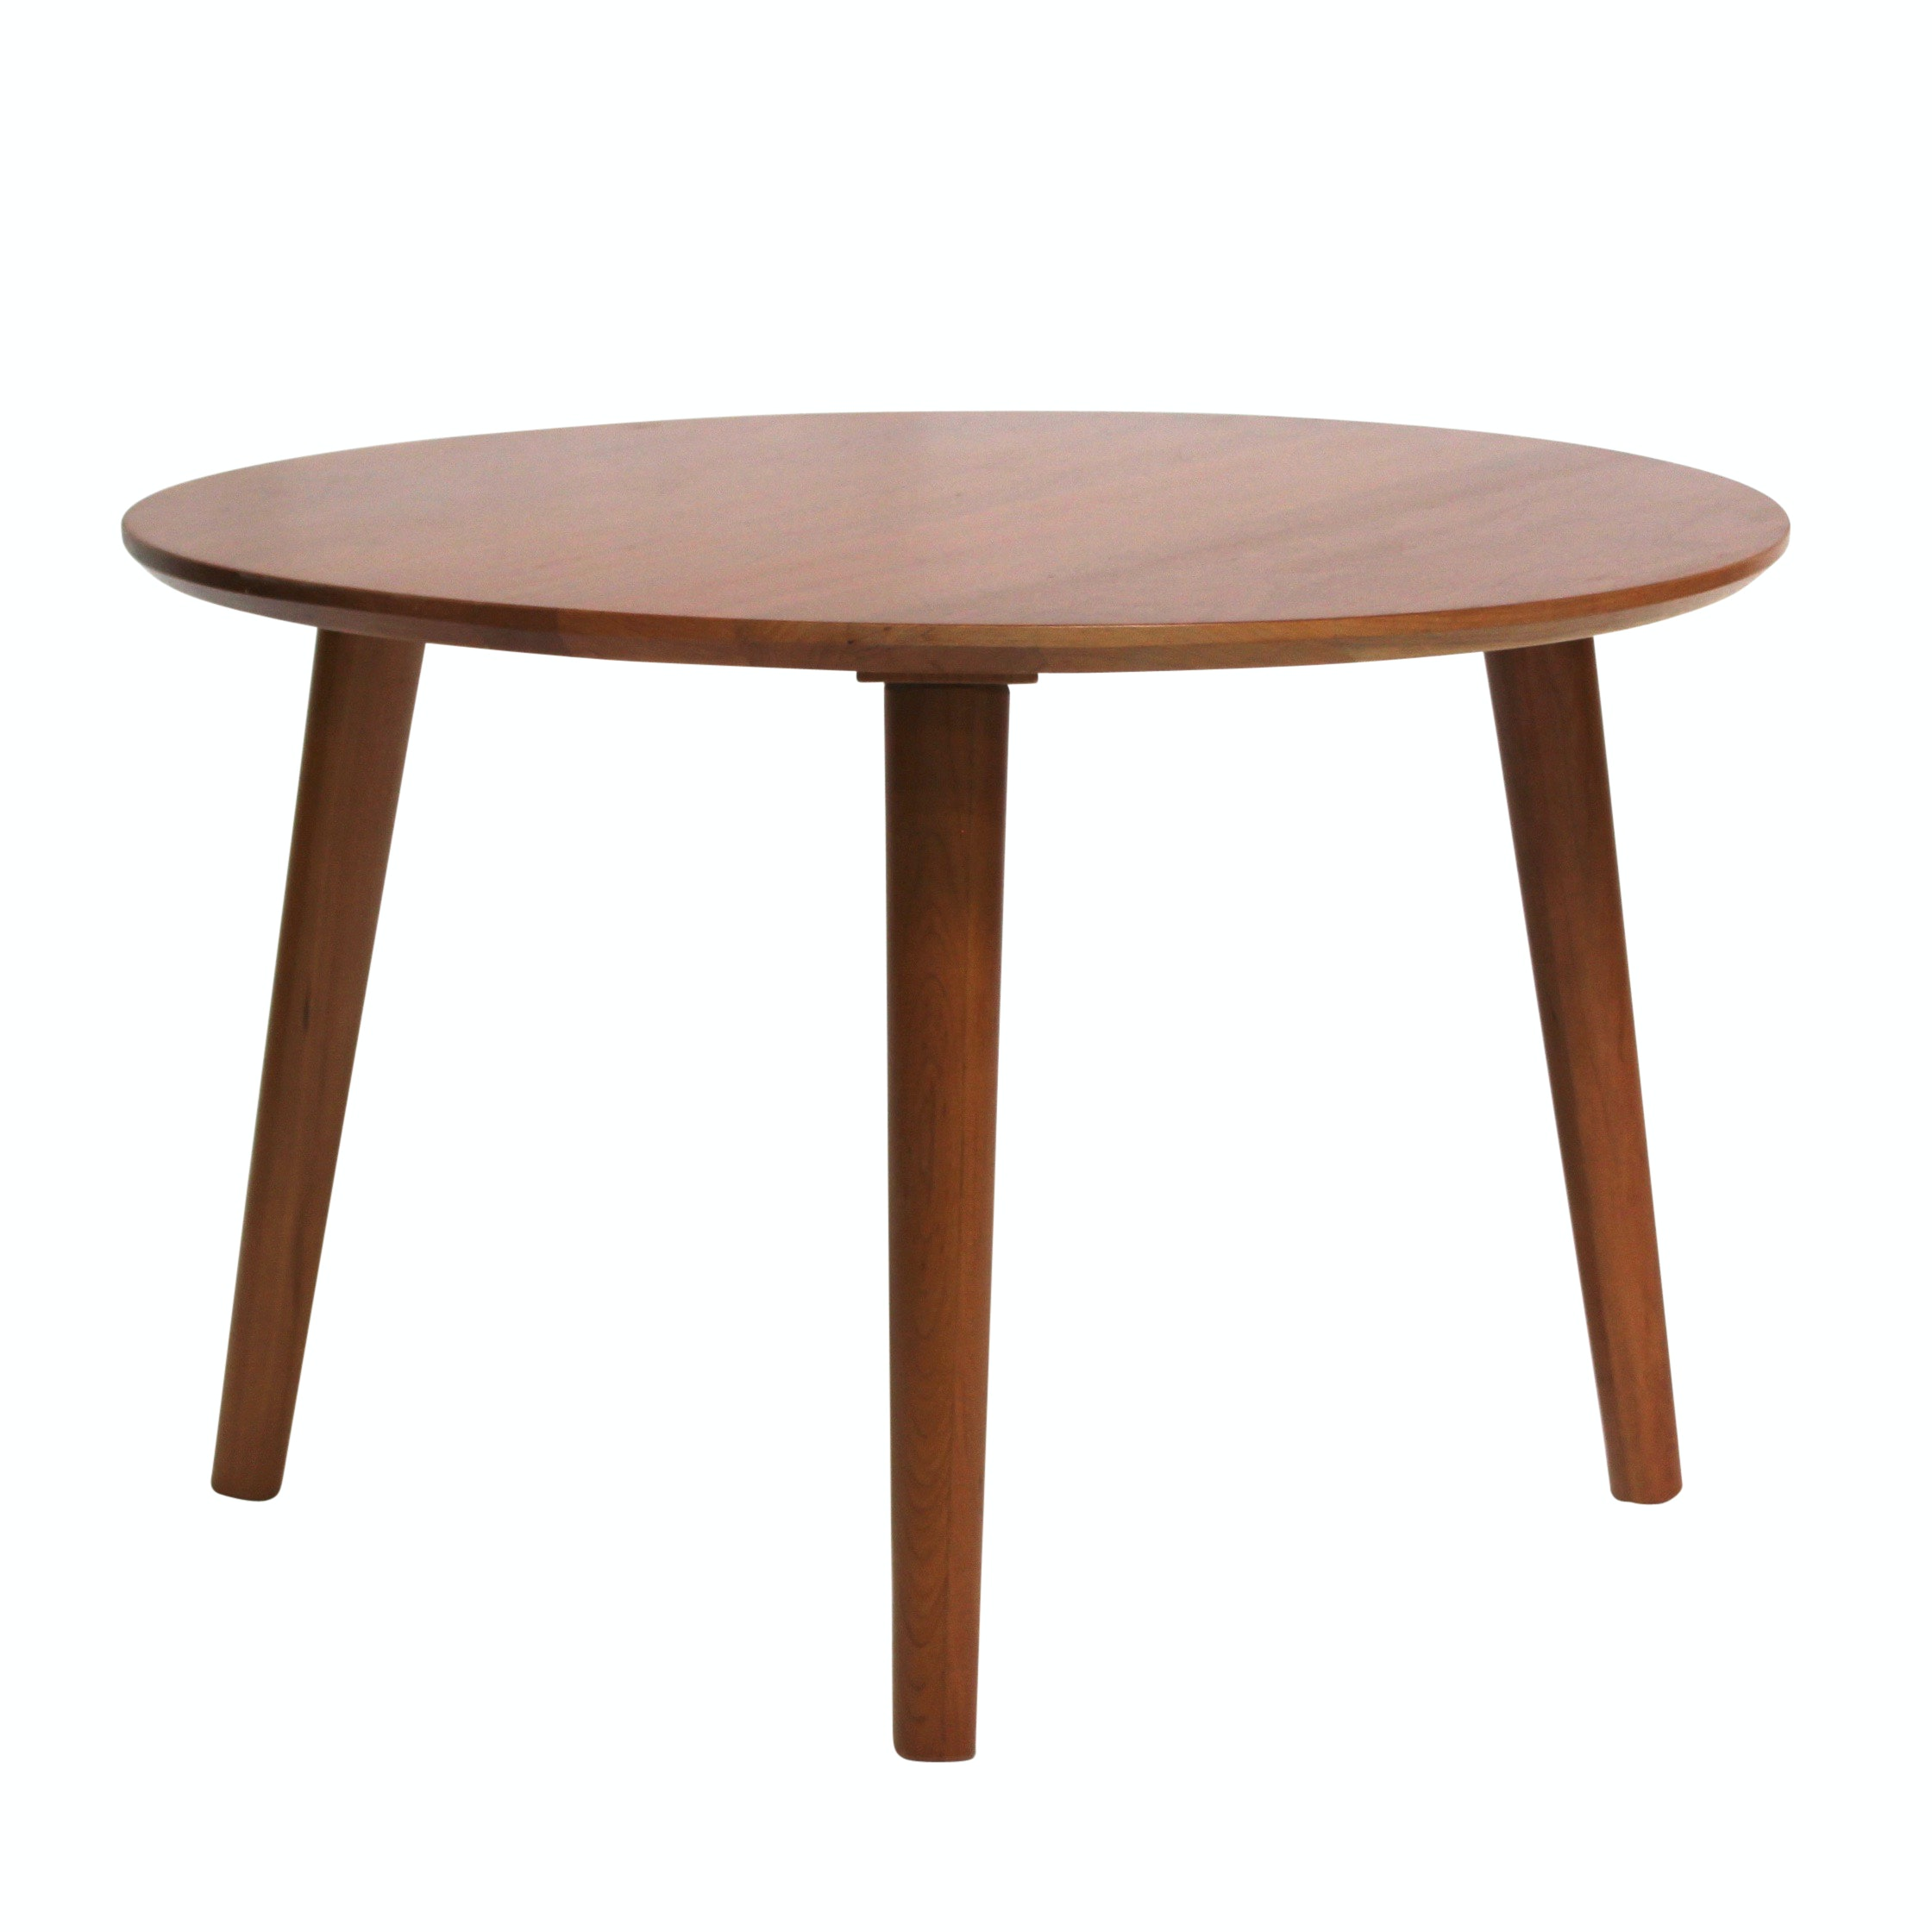 American Trails Mid-Century Modern Style Accent Table, Contemporary